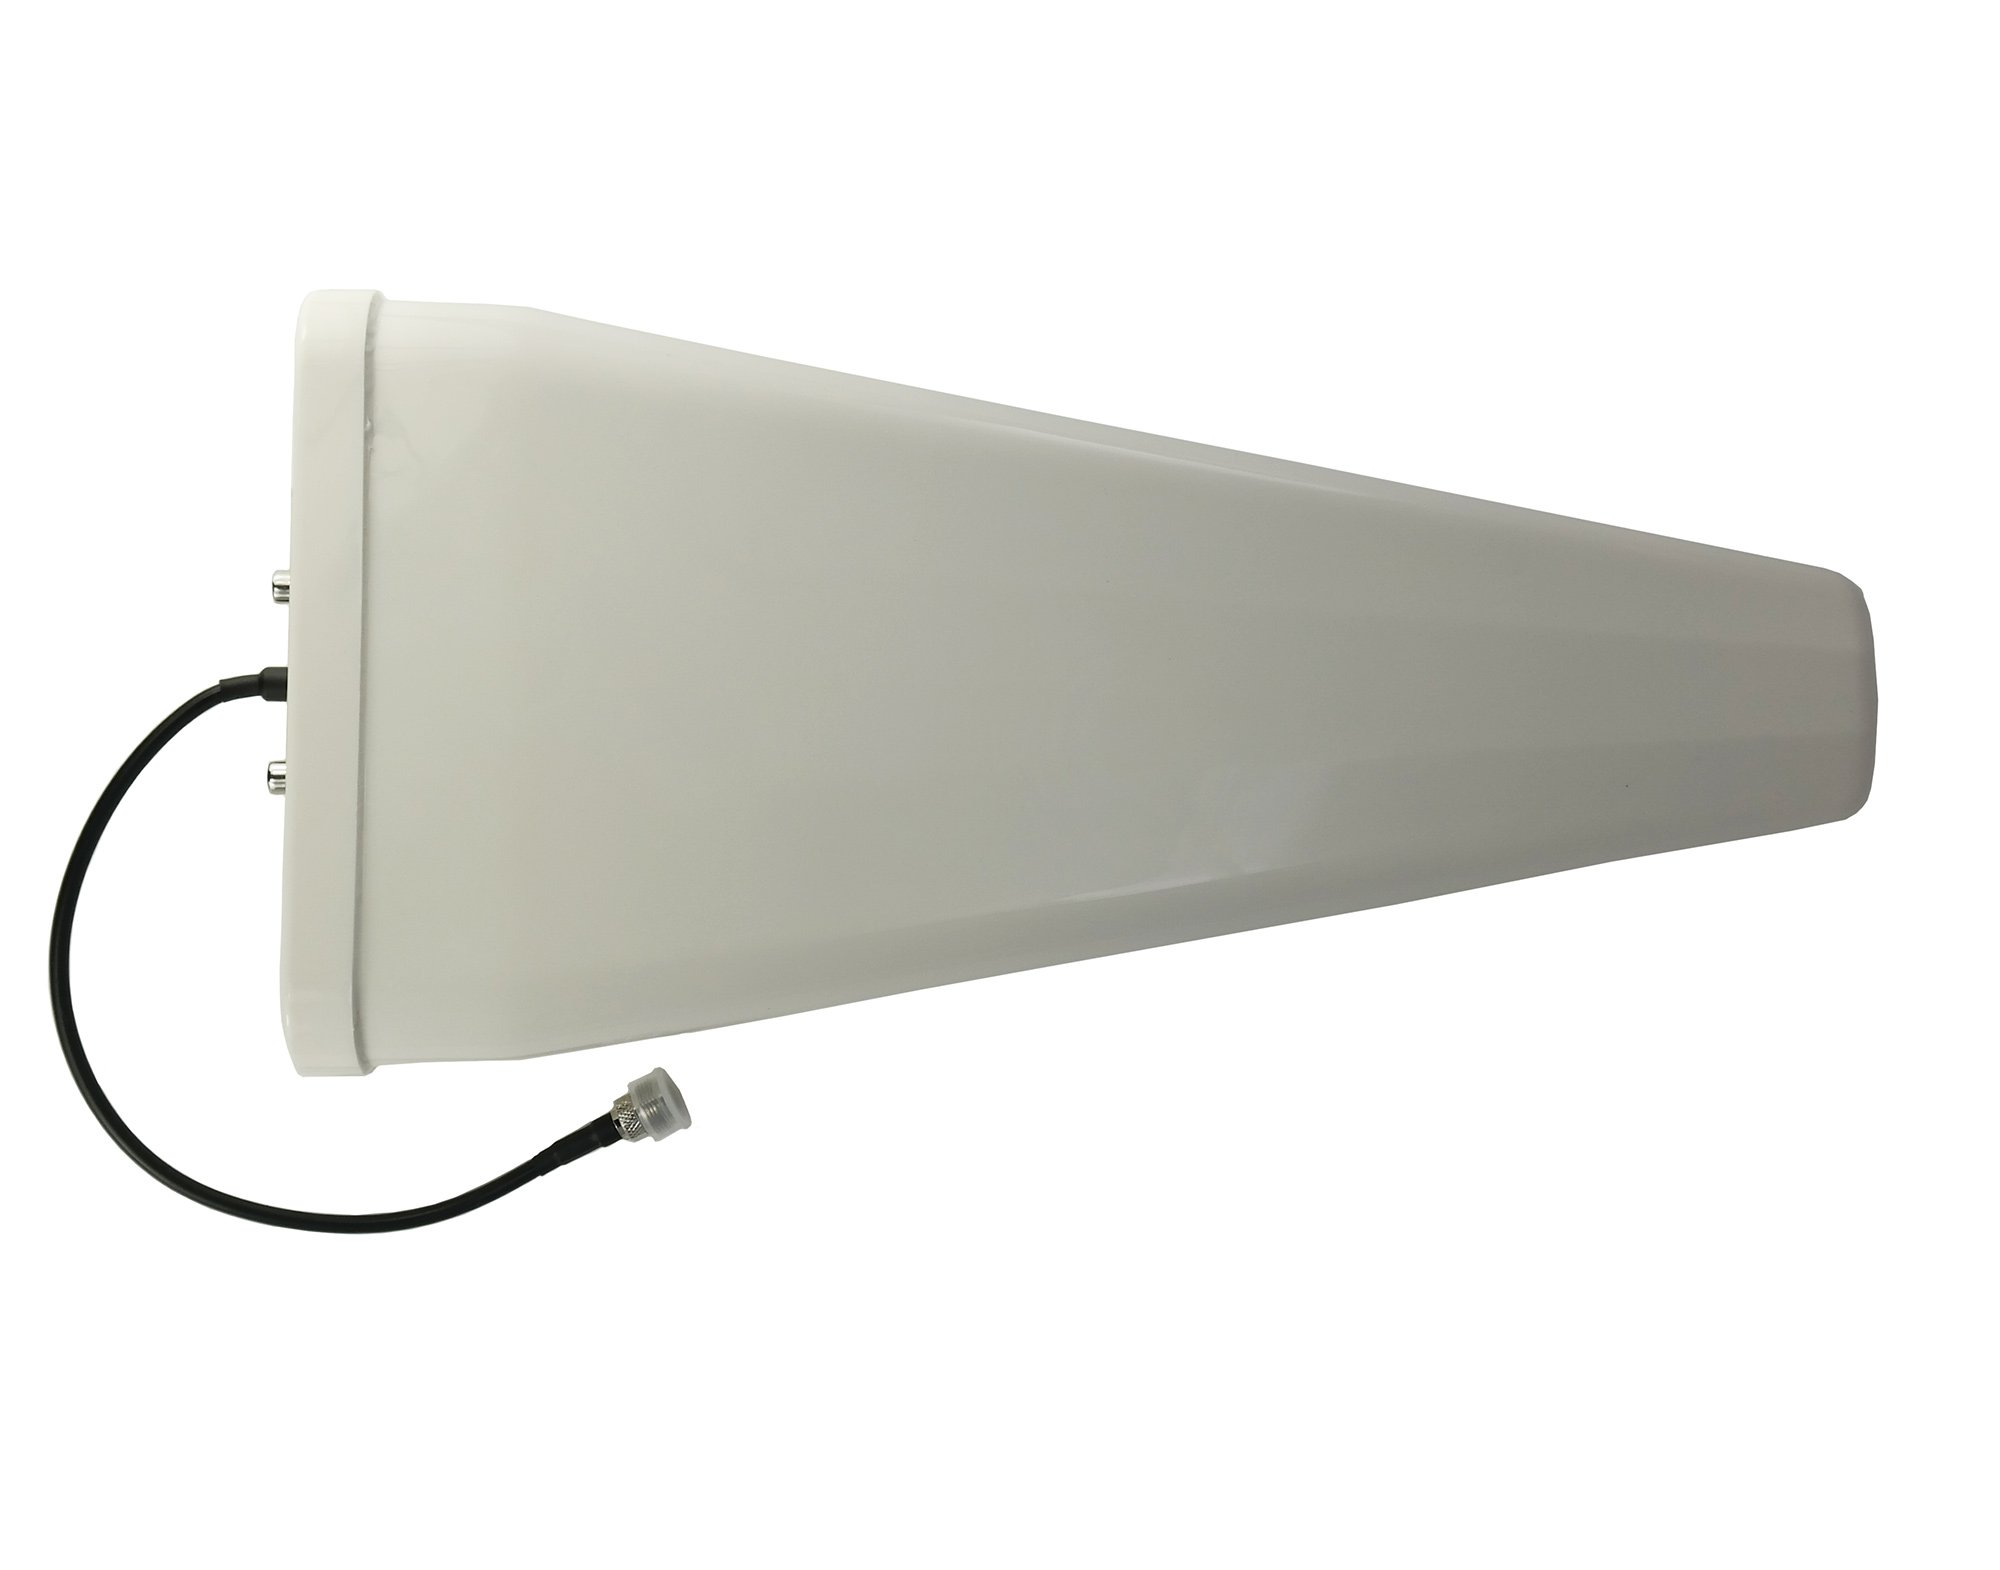 Proxicast 9/11 dBi Ultra Broadband LPDA High Gain 3G/4G/LTE/xLTE/Wi-Fi/Public Safety Band Fixed Mount Directional Antenna (698-960/1710-2700/4400-4900 MHz)